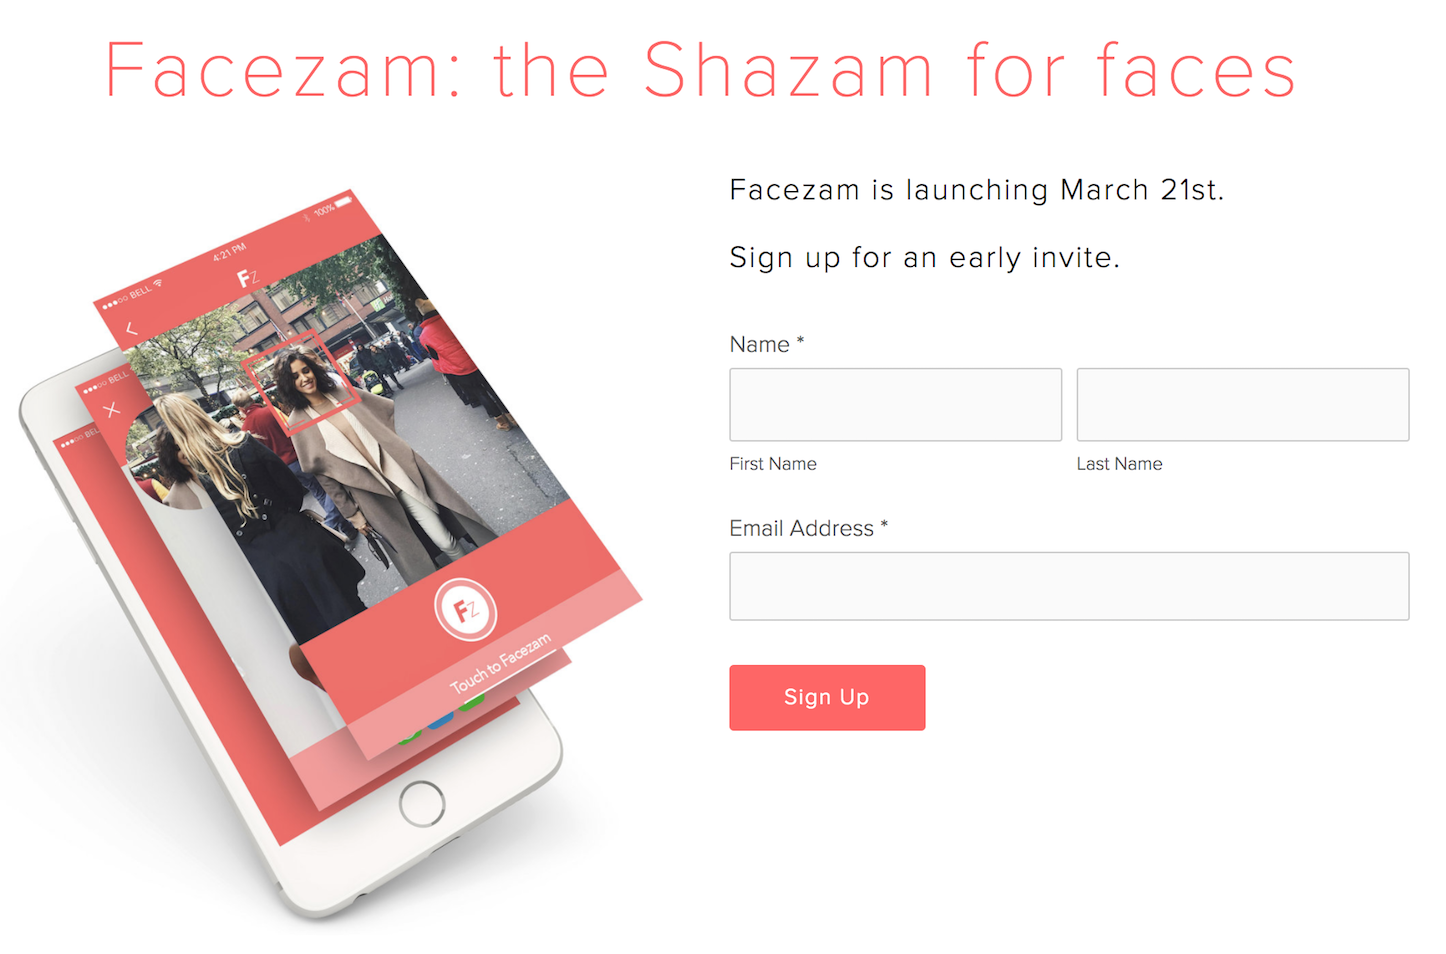 FaceZam the shazam for faces